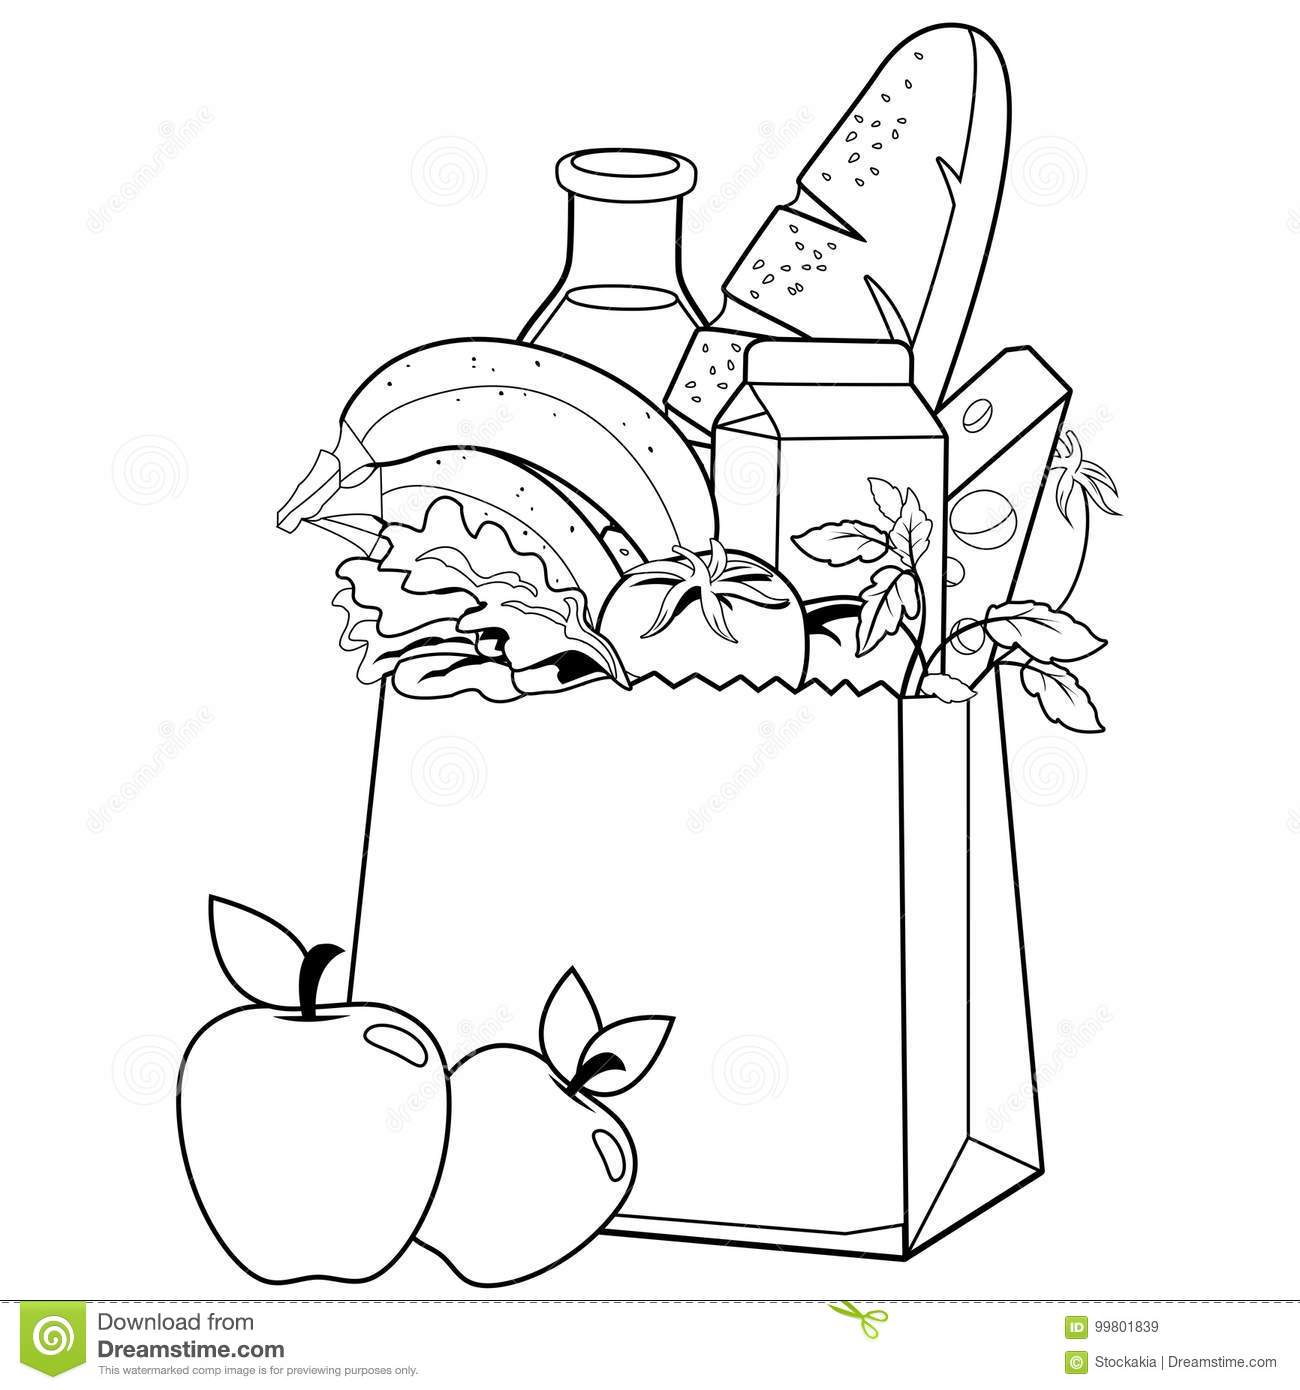 Bag With Groceries. Black And White Coloring Book Page Stock Vector ...